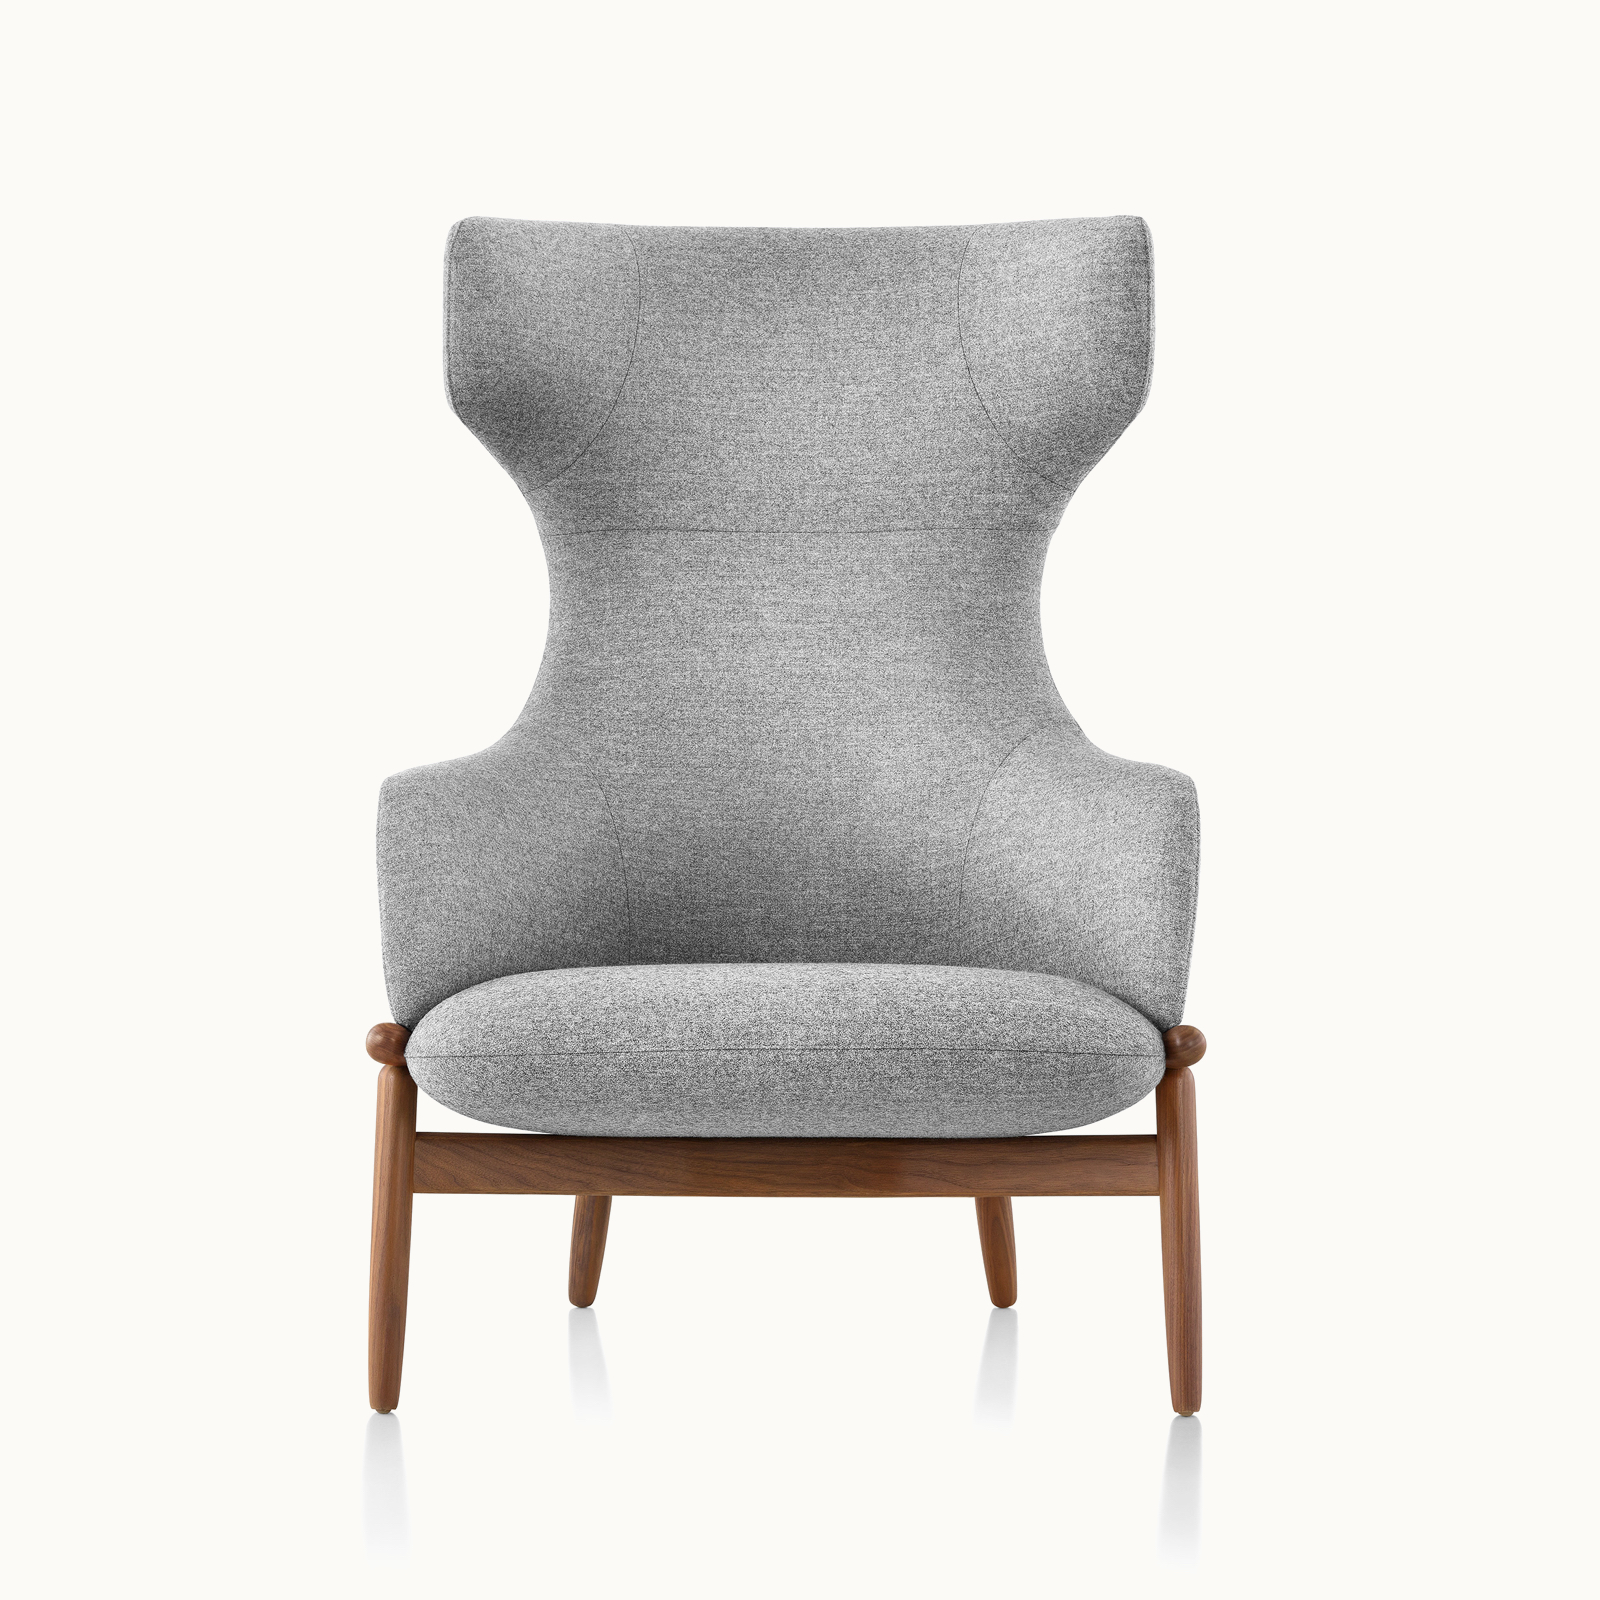 A wing-back Reframe lounge chair with light gray upholstery and a wood frame in a medium finish, viewed from the front.